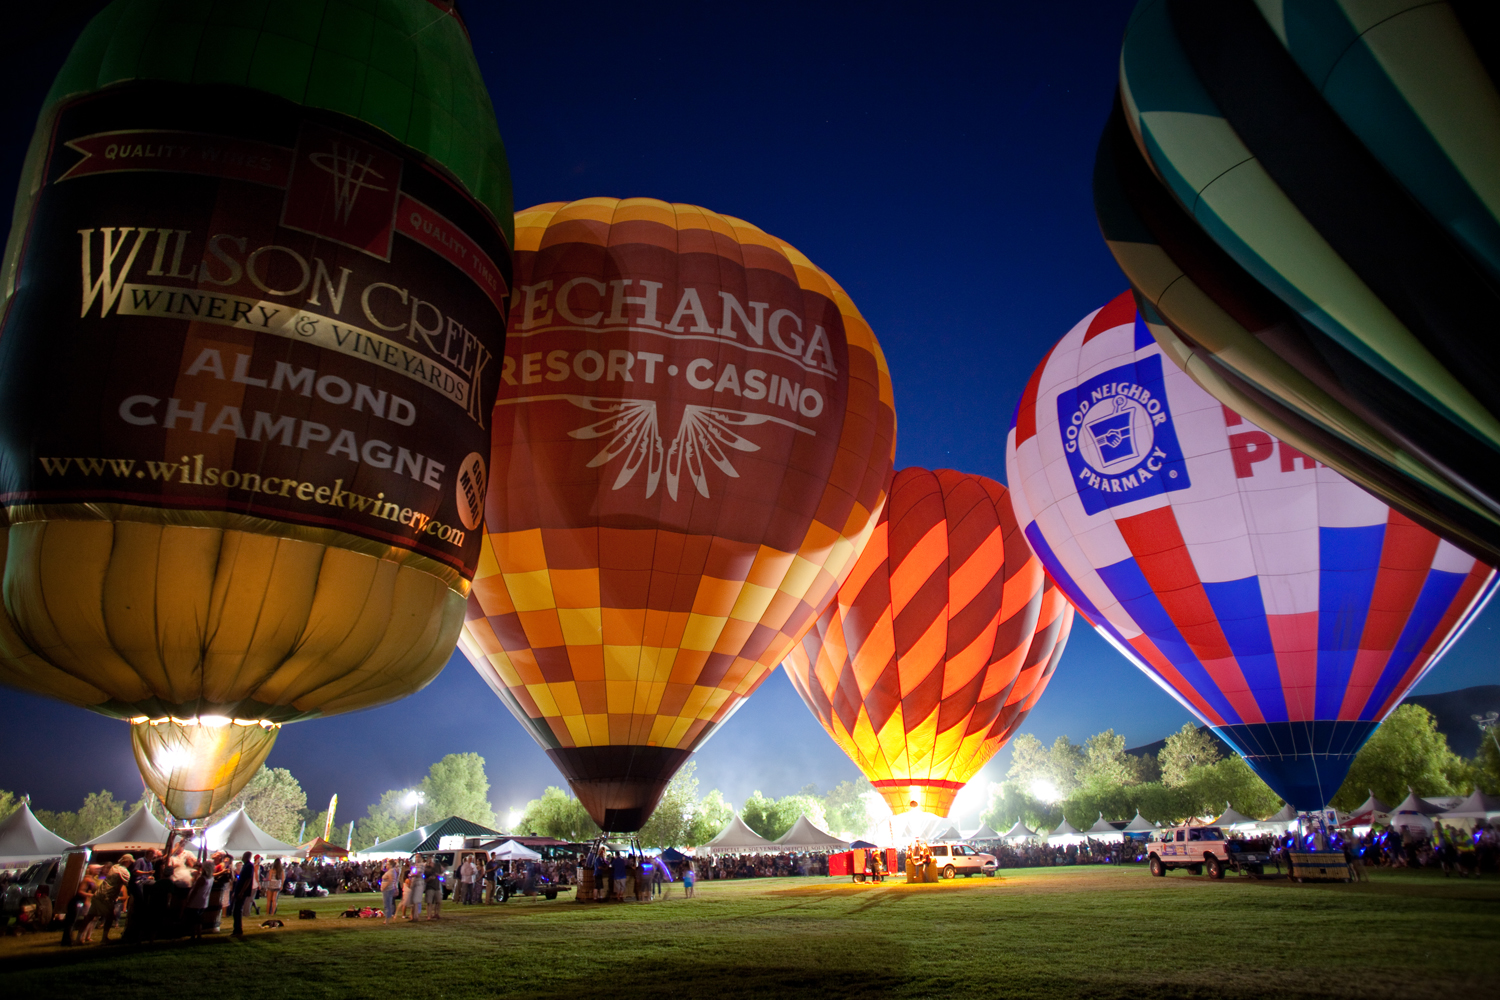 Come see some cool demonstrations of solar in action at the Temecula Valley Balloon and Wine Festival